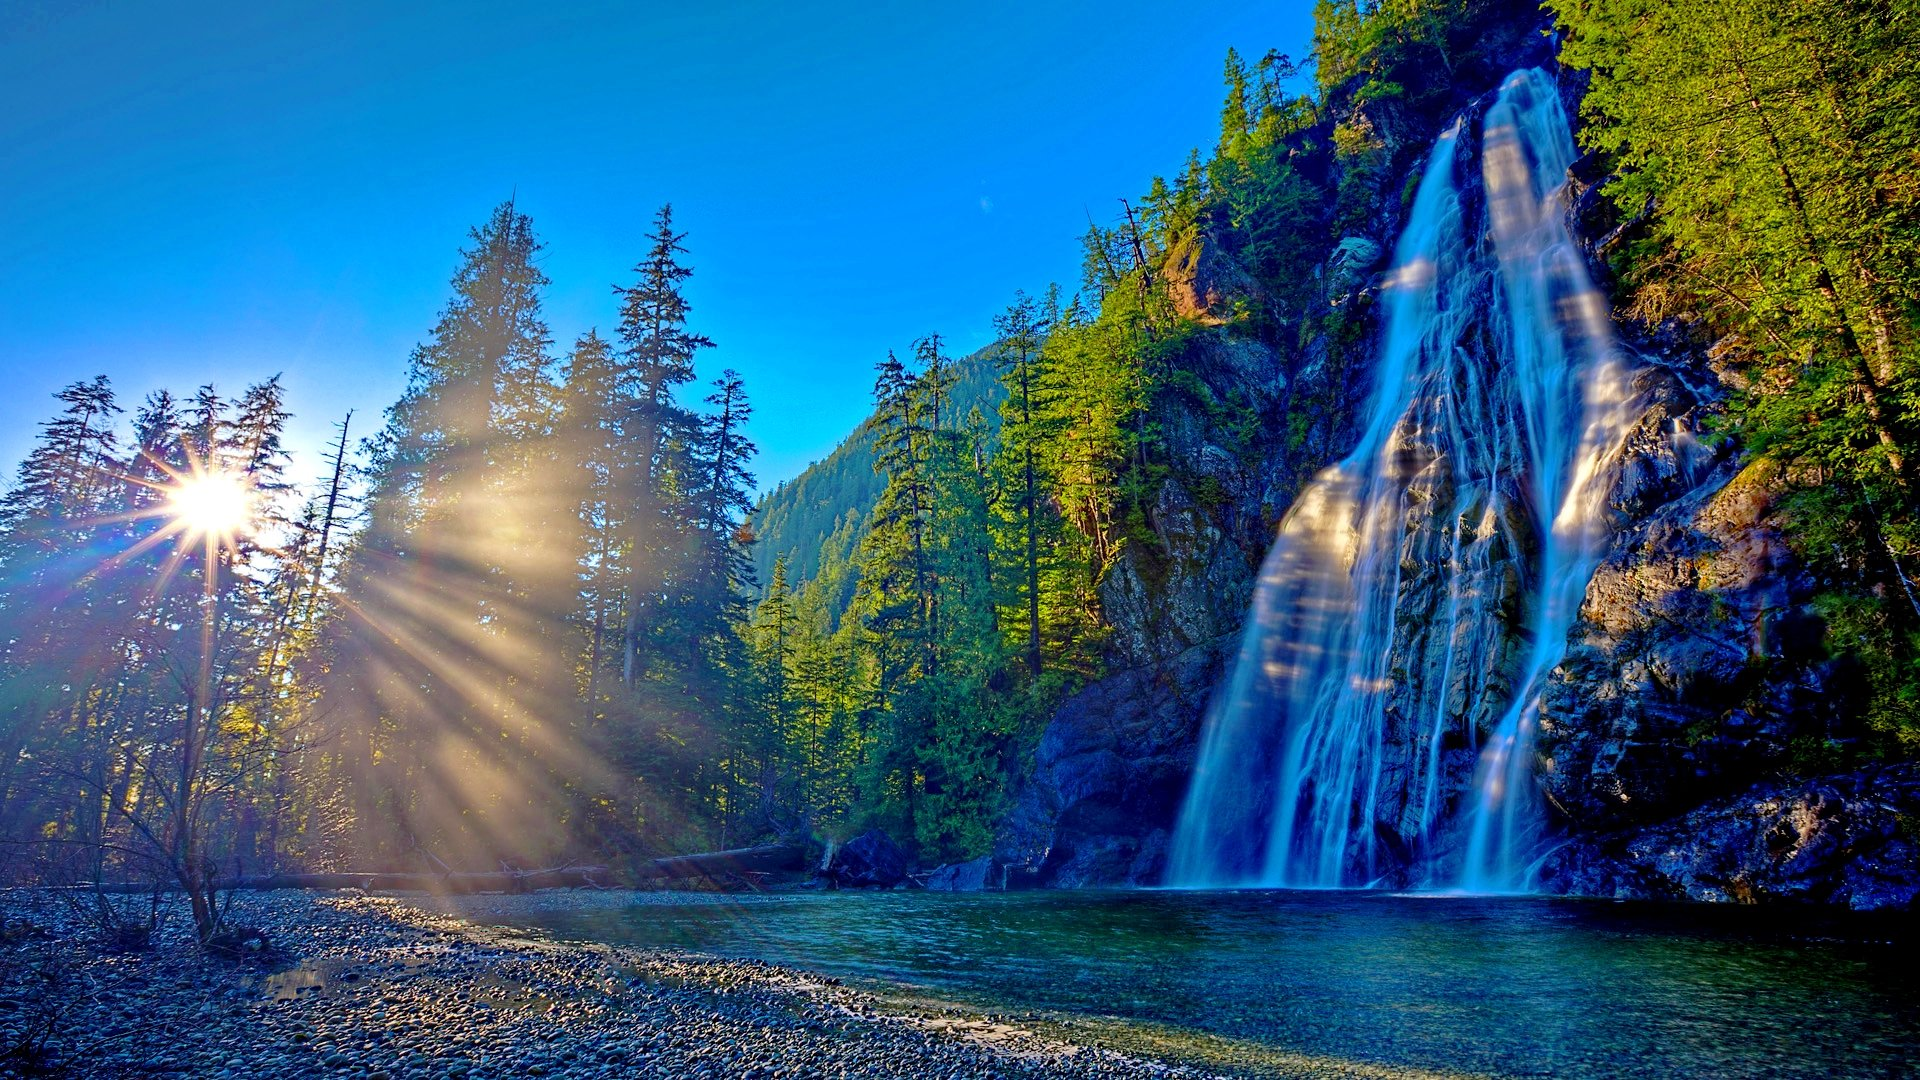 1920x1080 Hd Wallpapers Waterfall: Waterfall Wallpapers 1920x1080 Full HD (1080p) Desktop